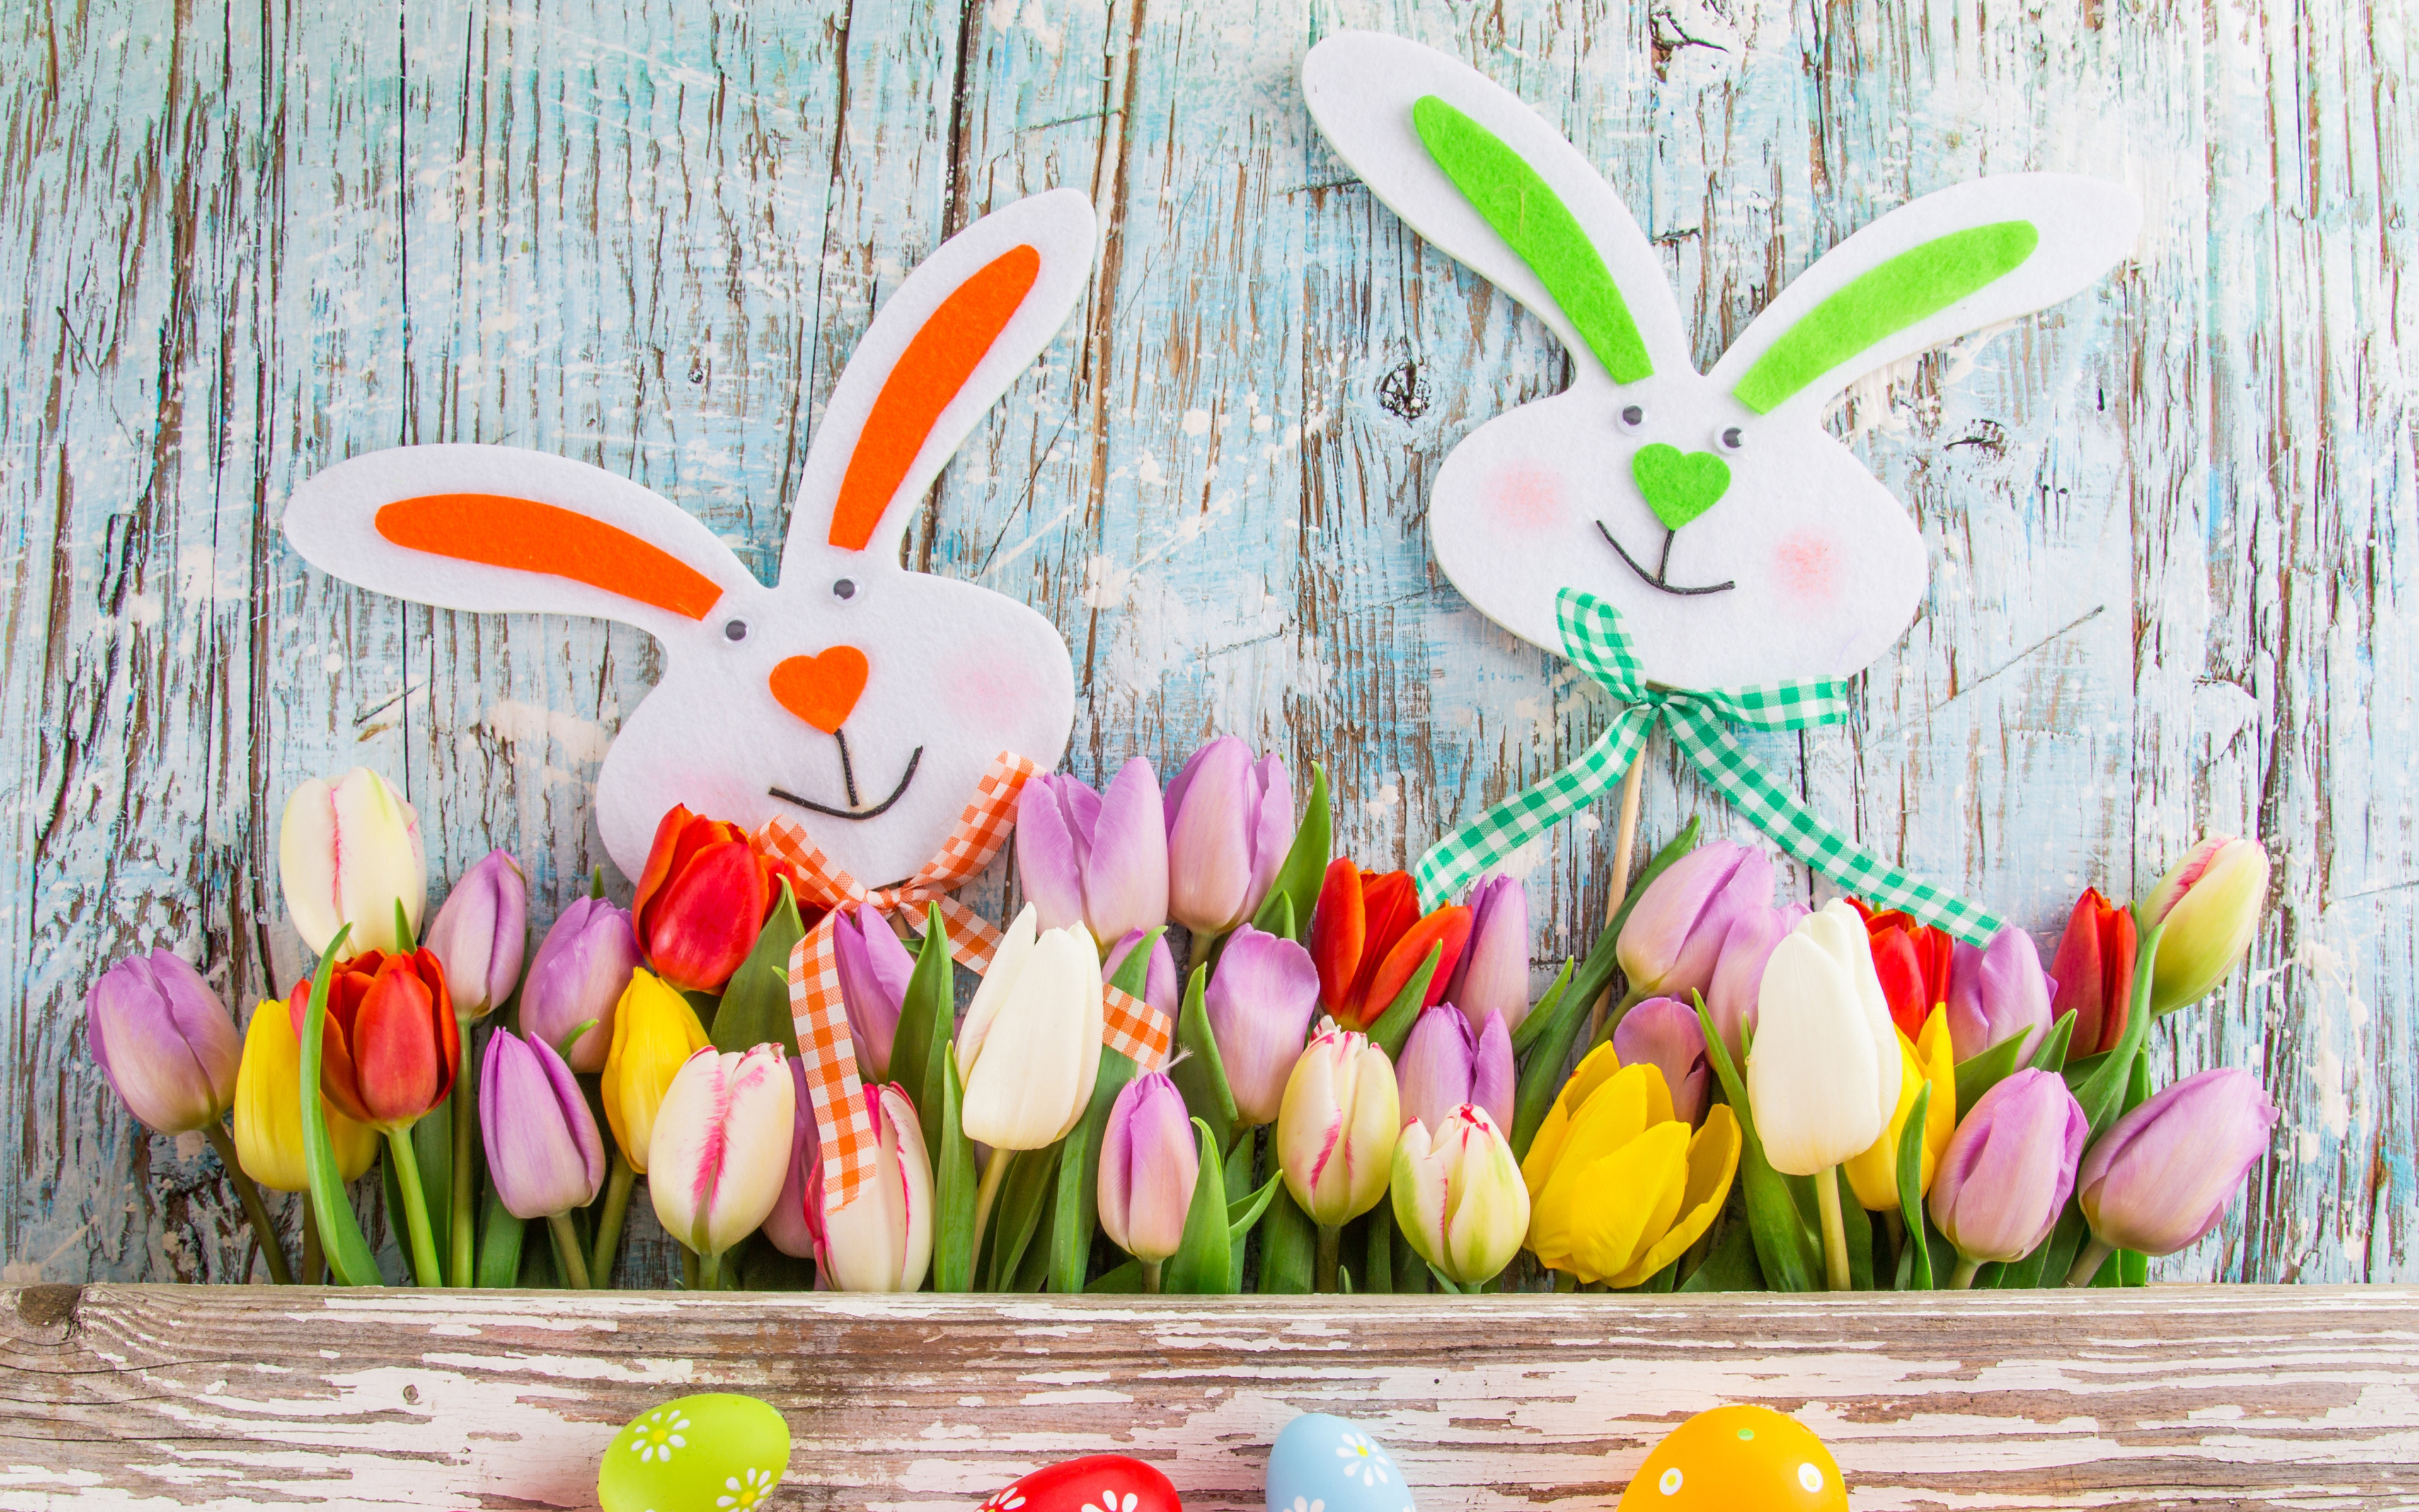 Happy Easter Decor with Bunny Faces and Tulips  wide widescreen 3839x2400